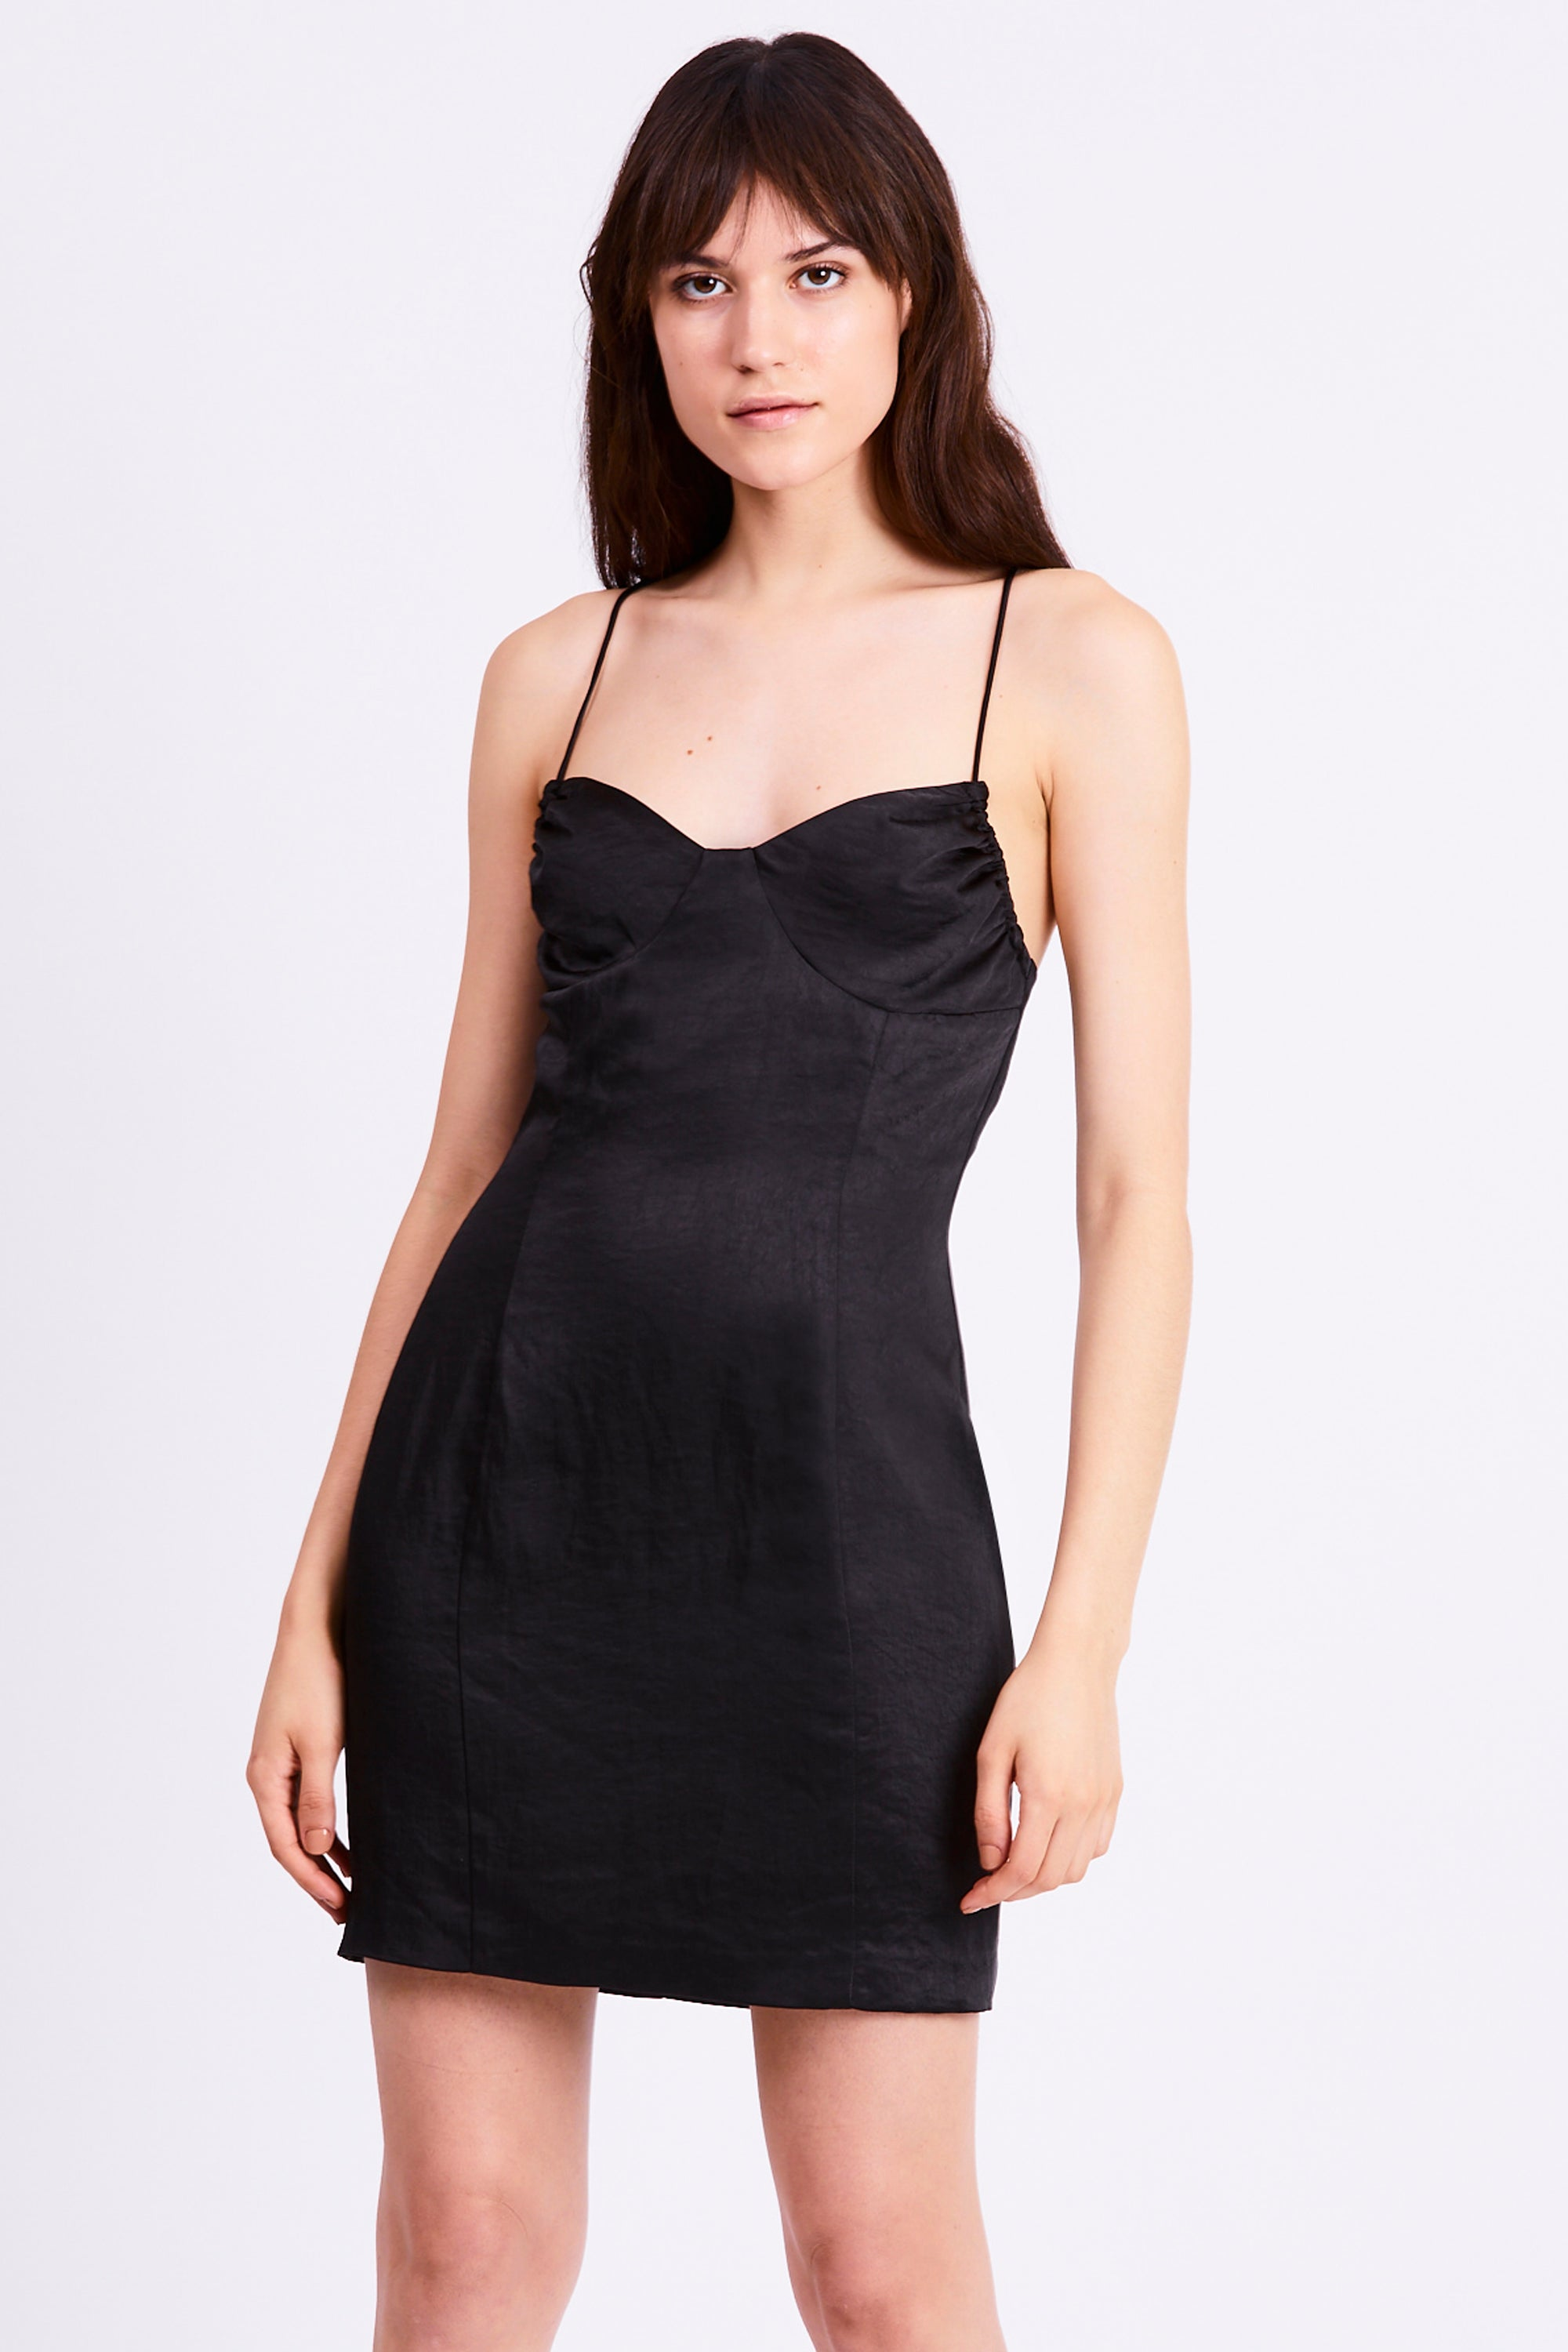 FINAL SAY MINI DRESS | BLACK